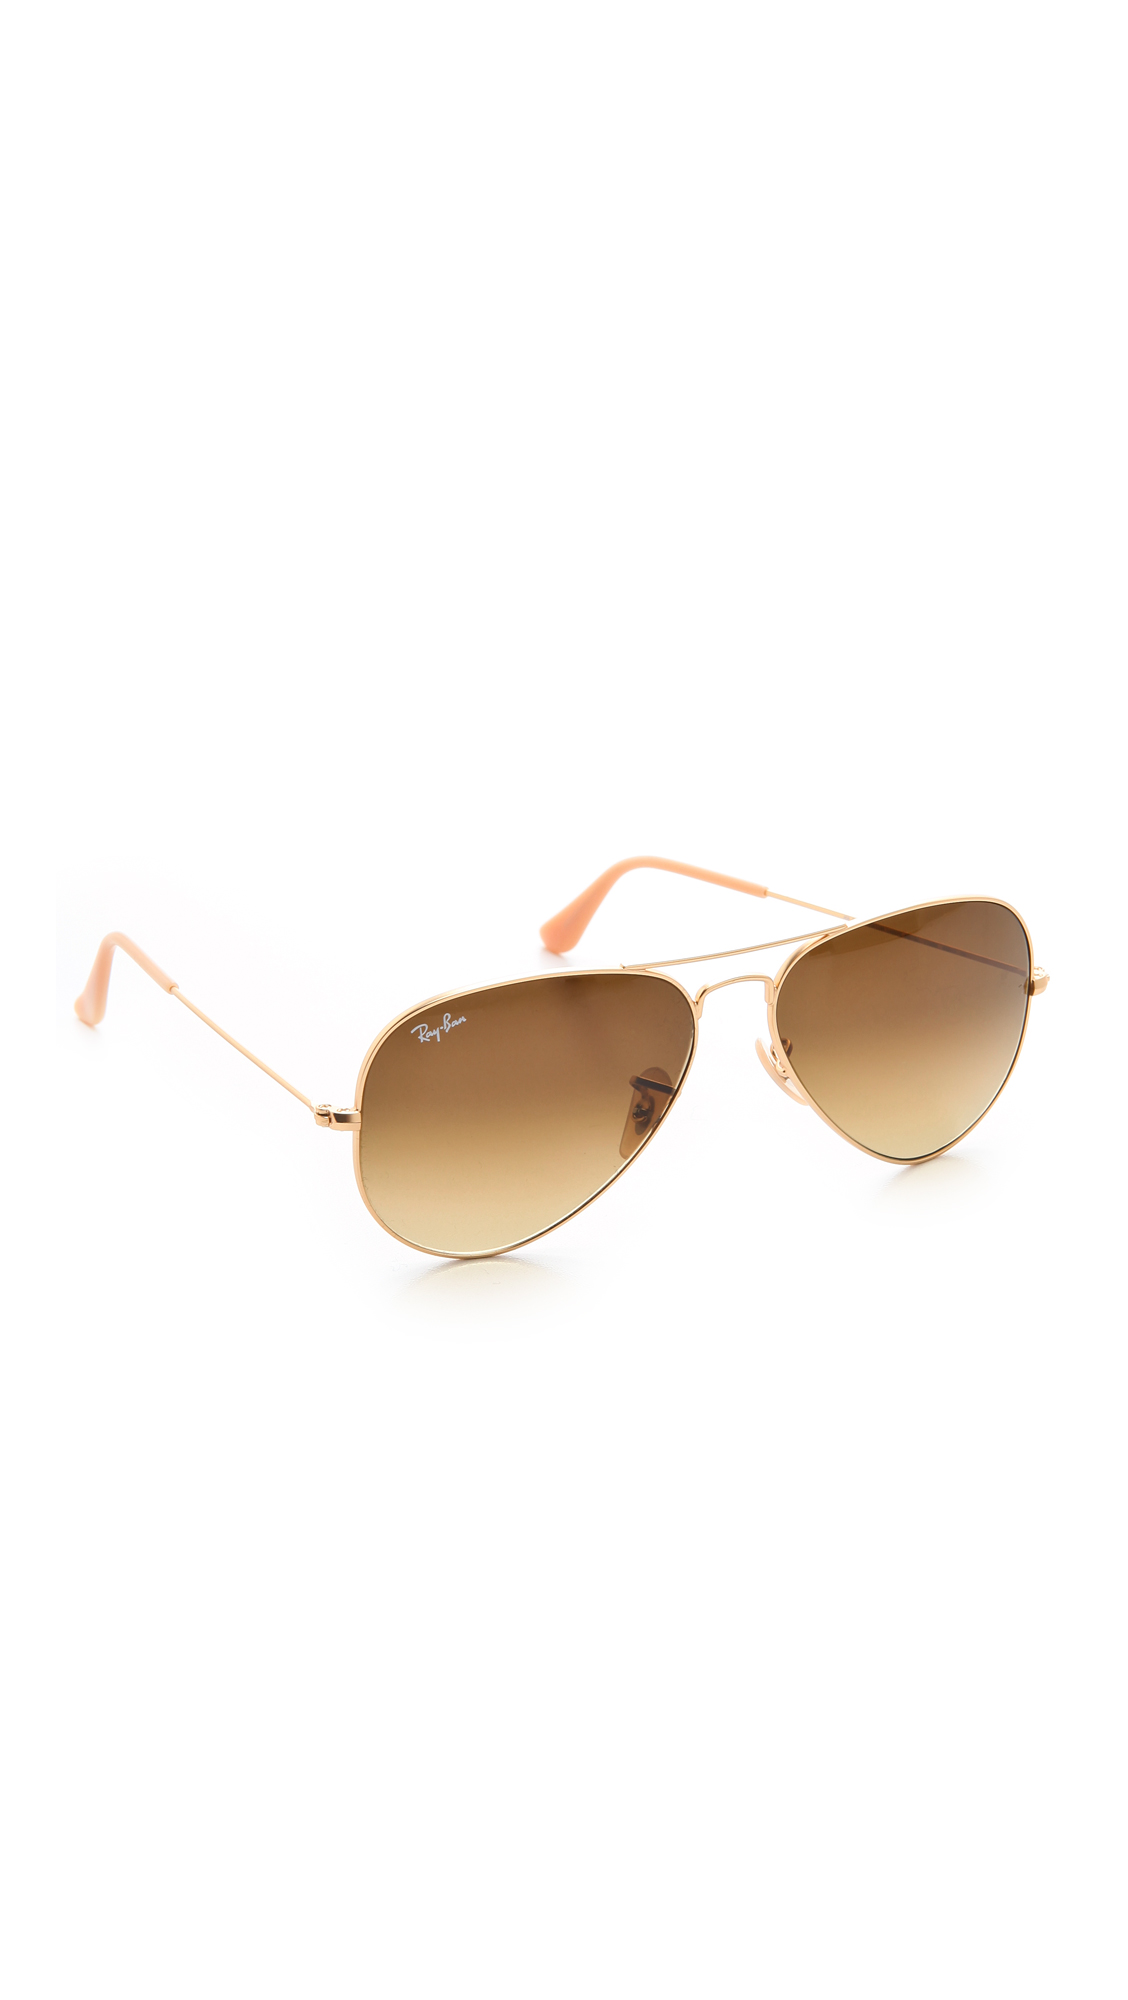 Ray-Ban Matte Classic Aviator Sunglasses | SHOPBOP